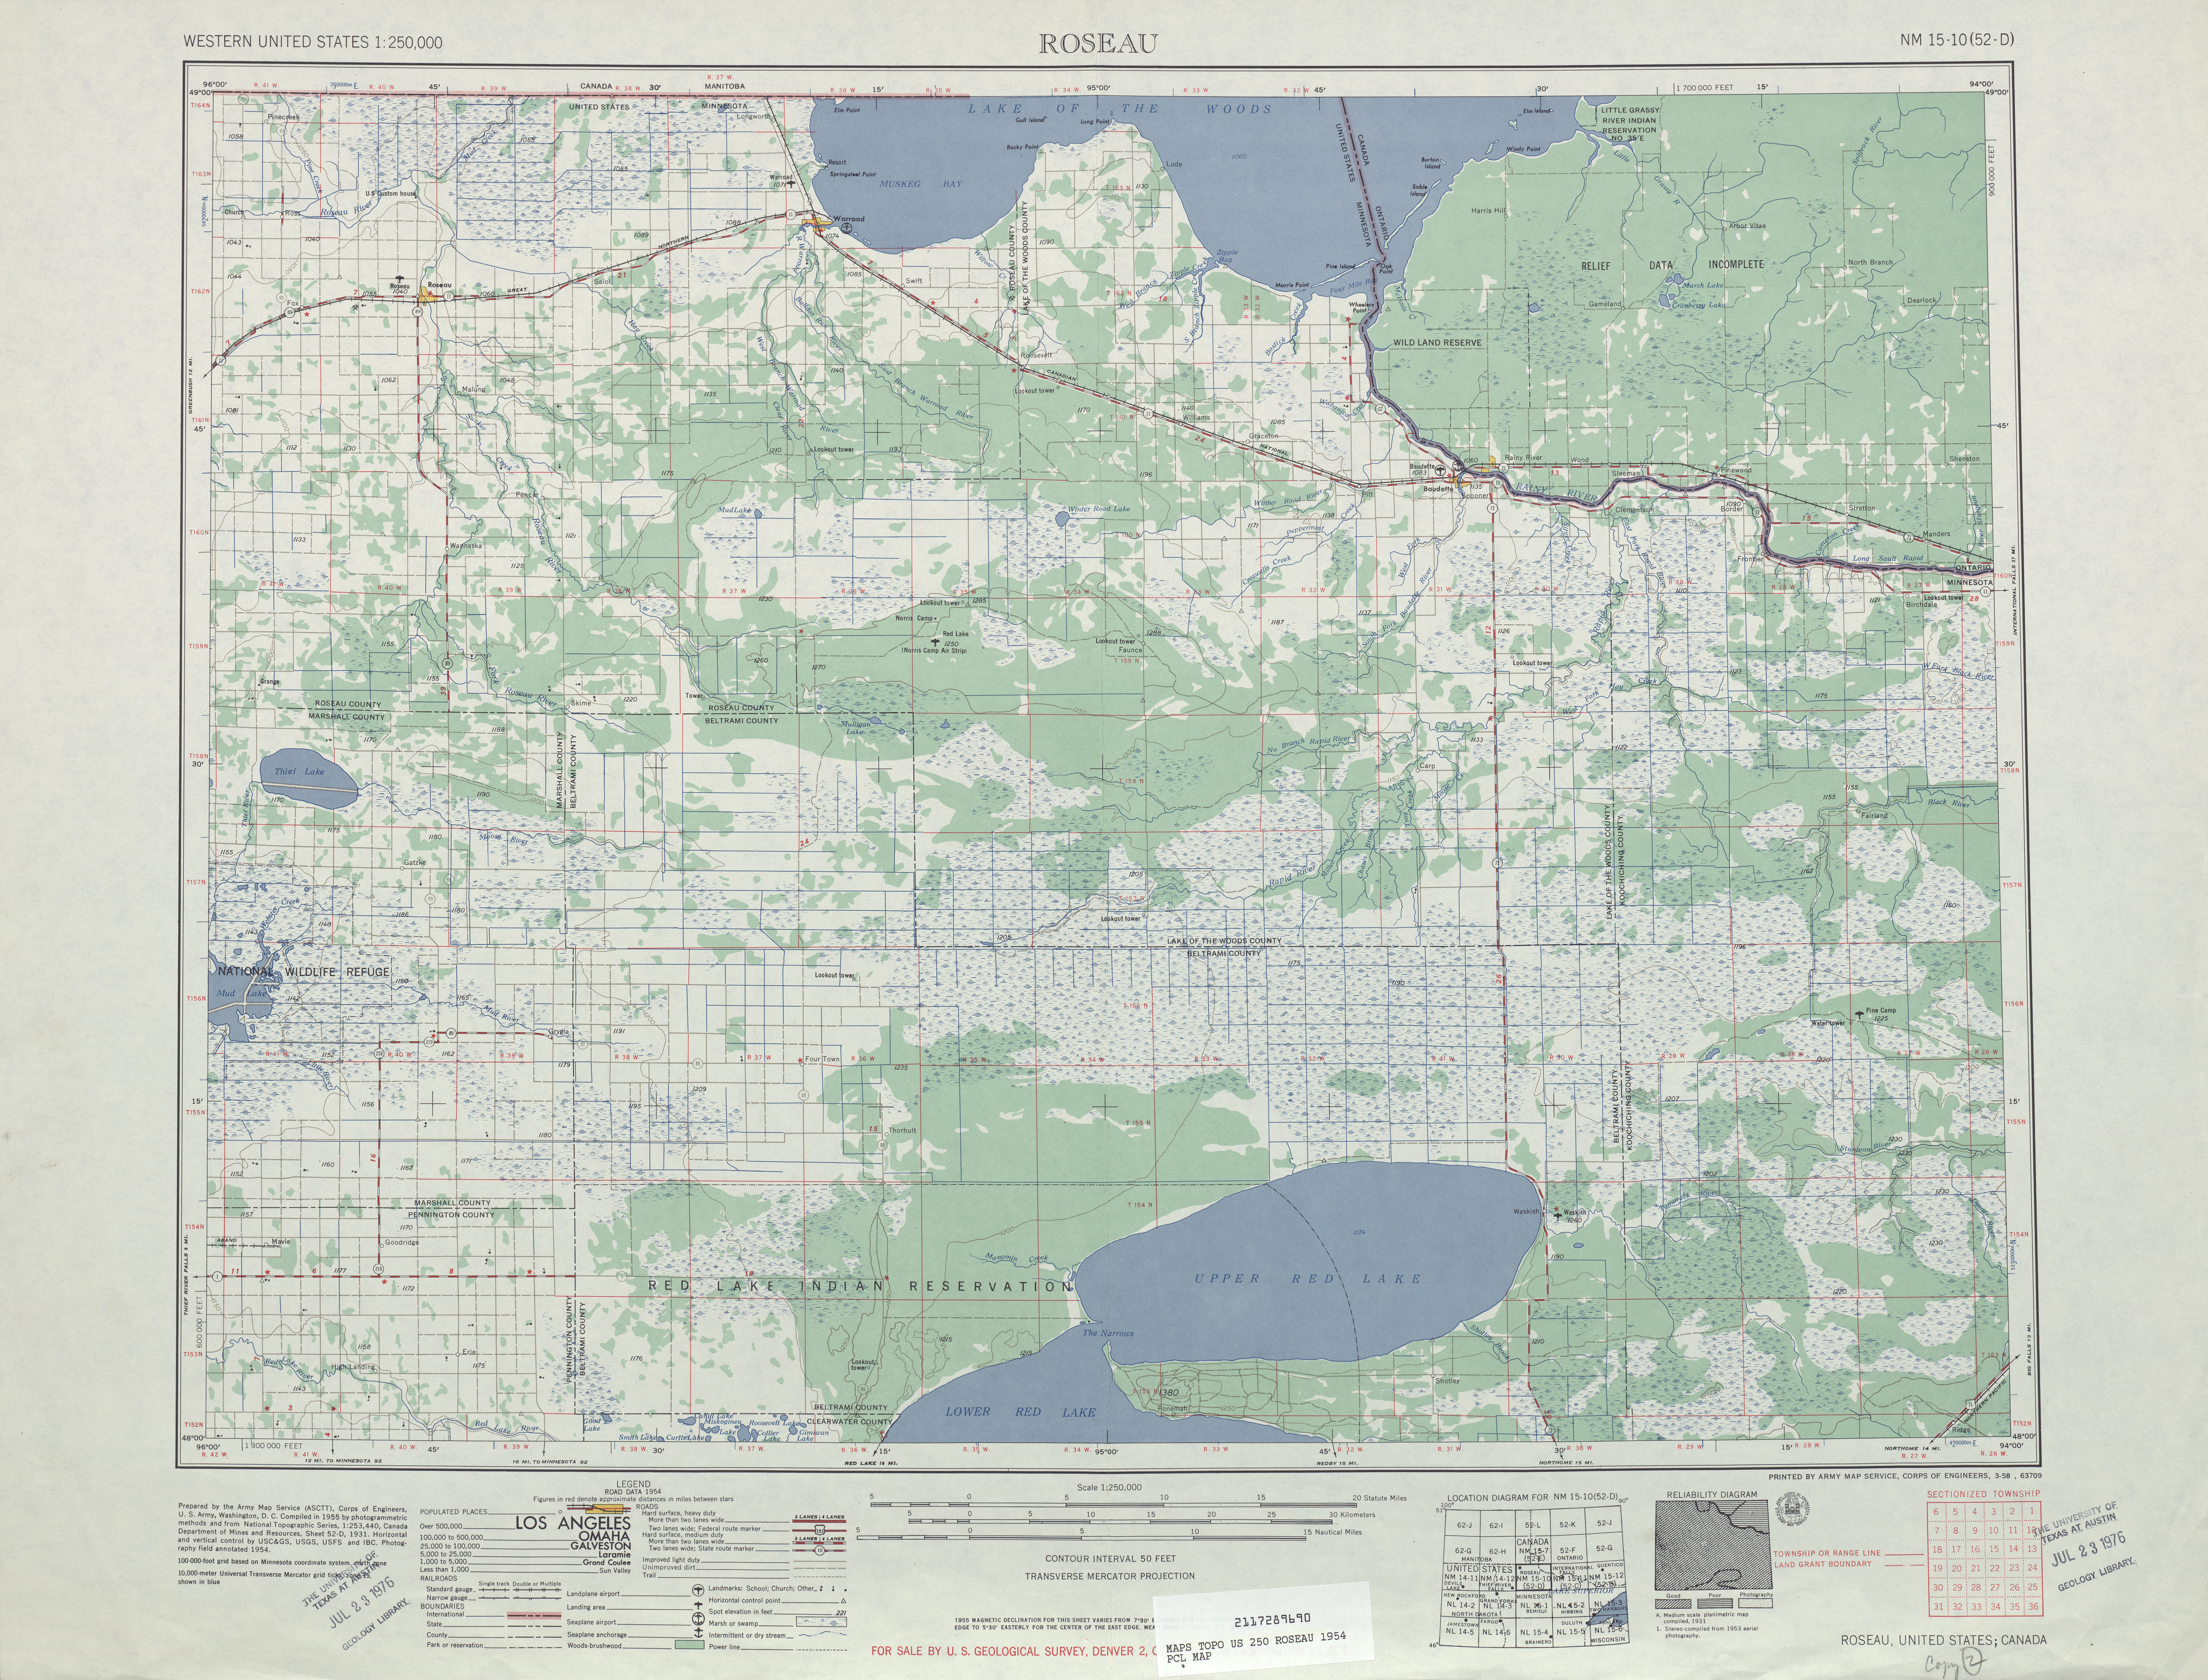 Roseau Topographic Map Sheet, United States 1954